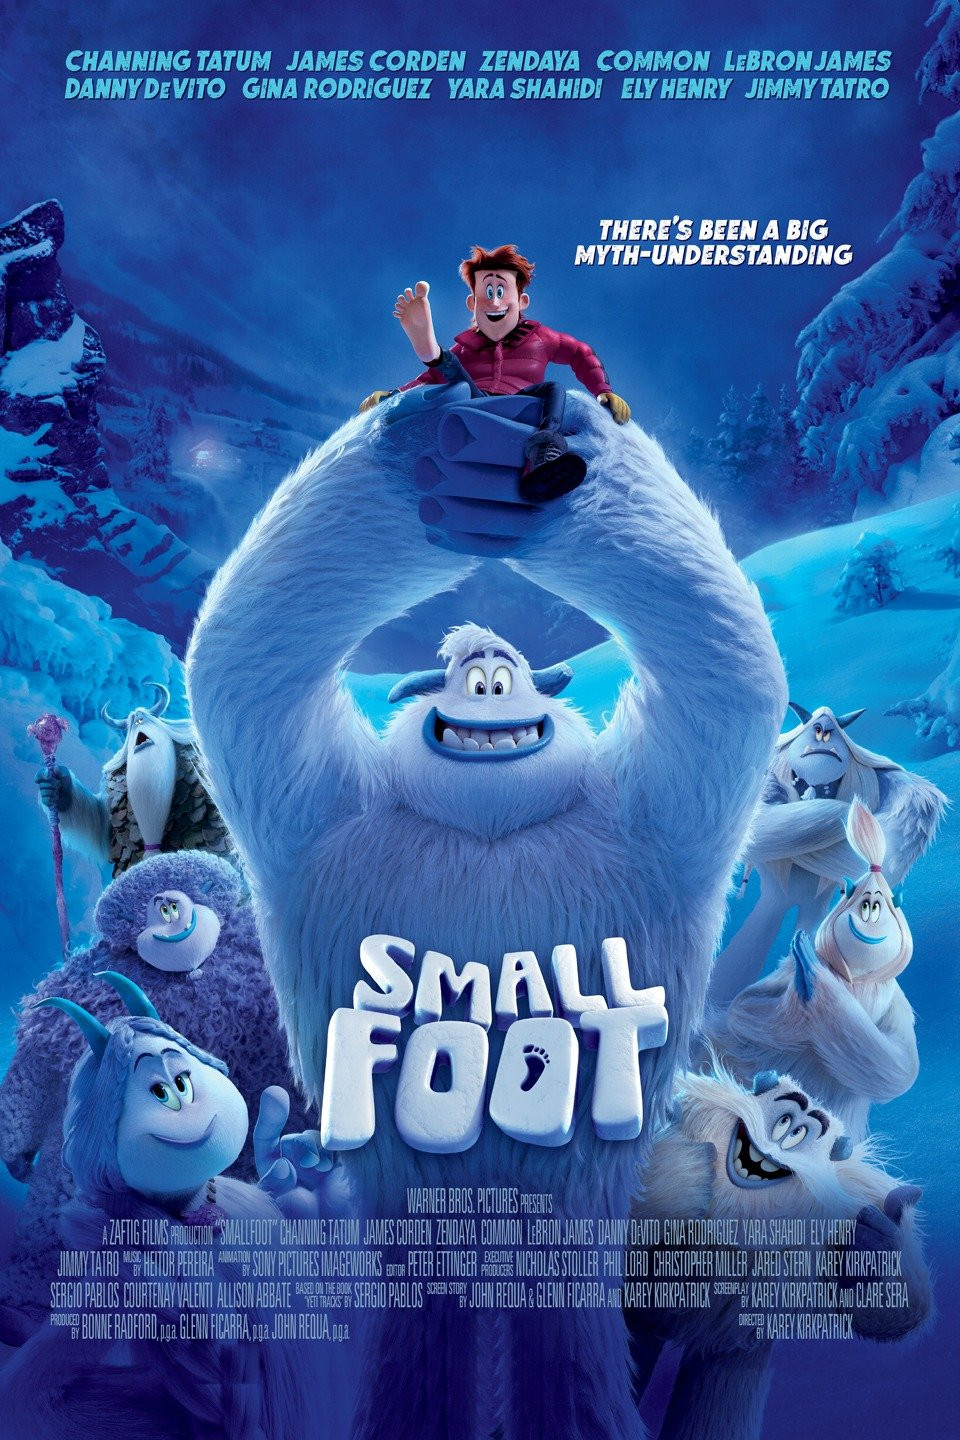 Small Foot & Alloy Tracks